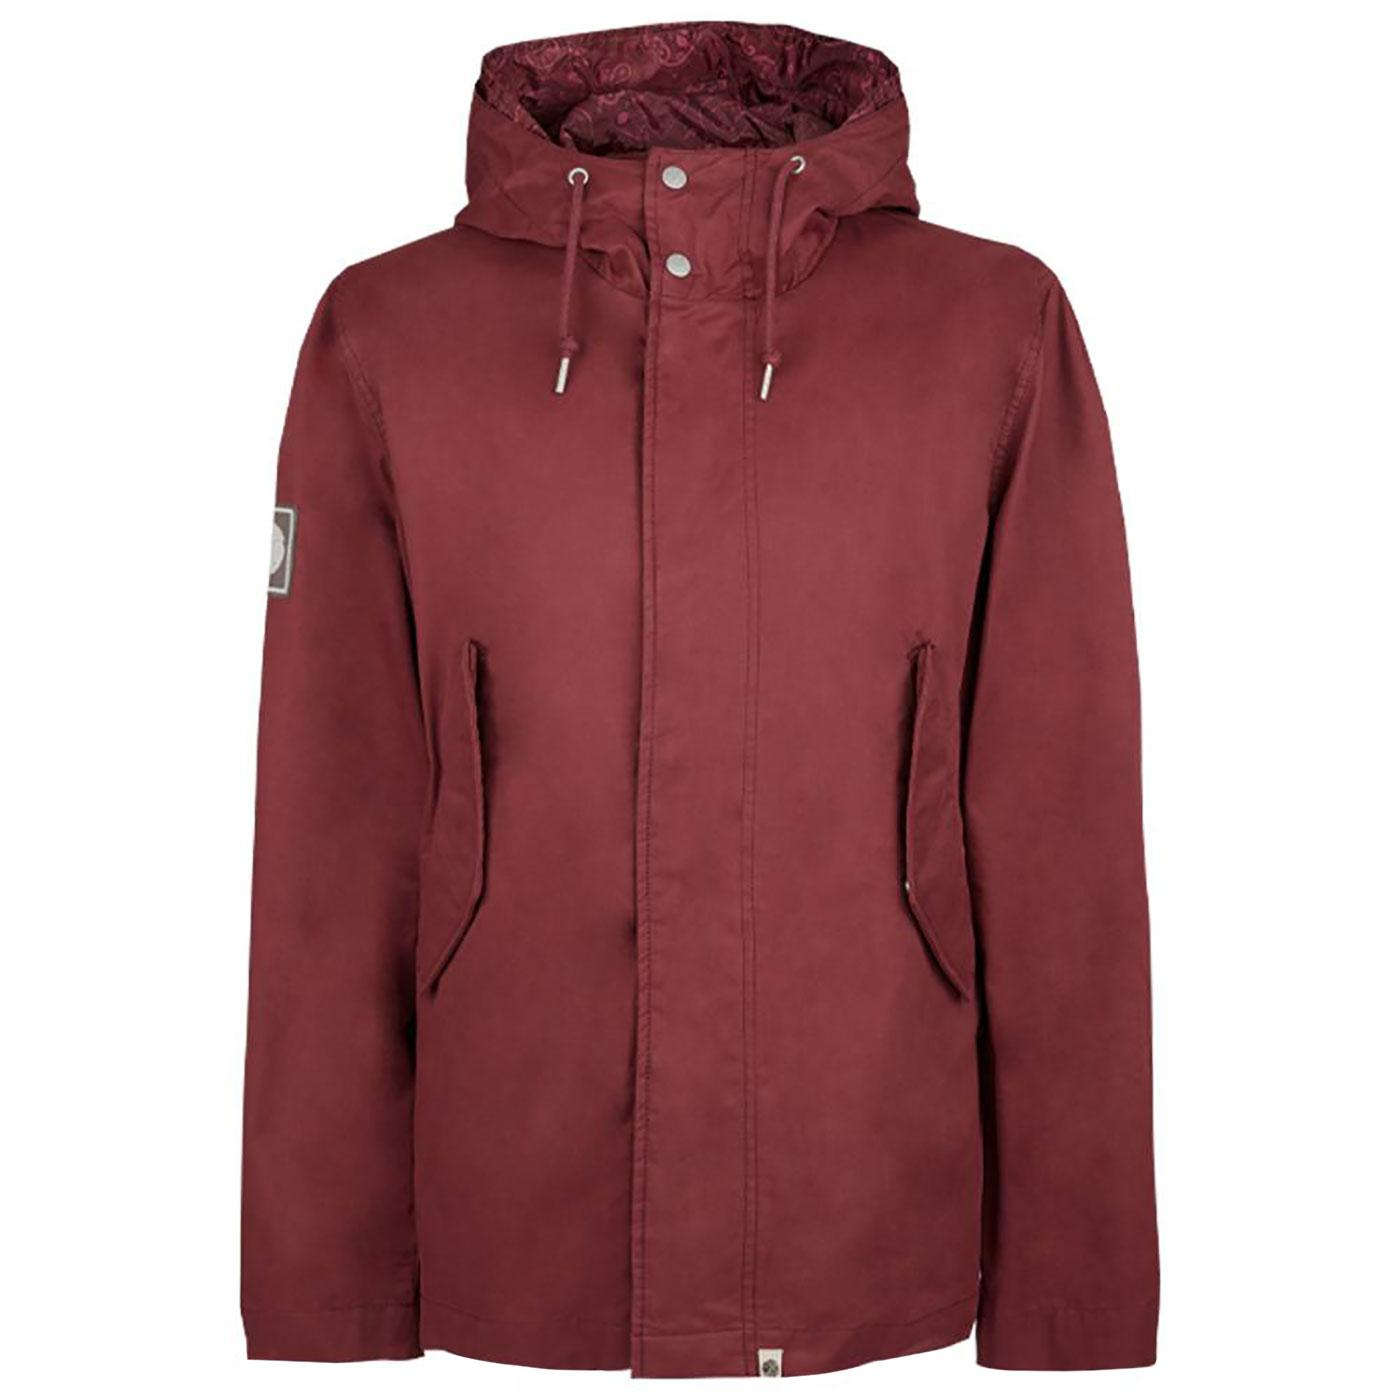 PRETTY GREEN Retro Mod Hooded Cotton Jacket RED